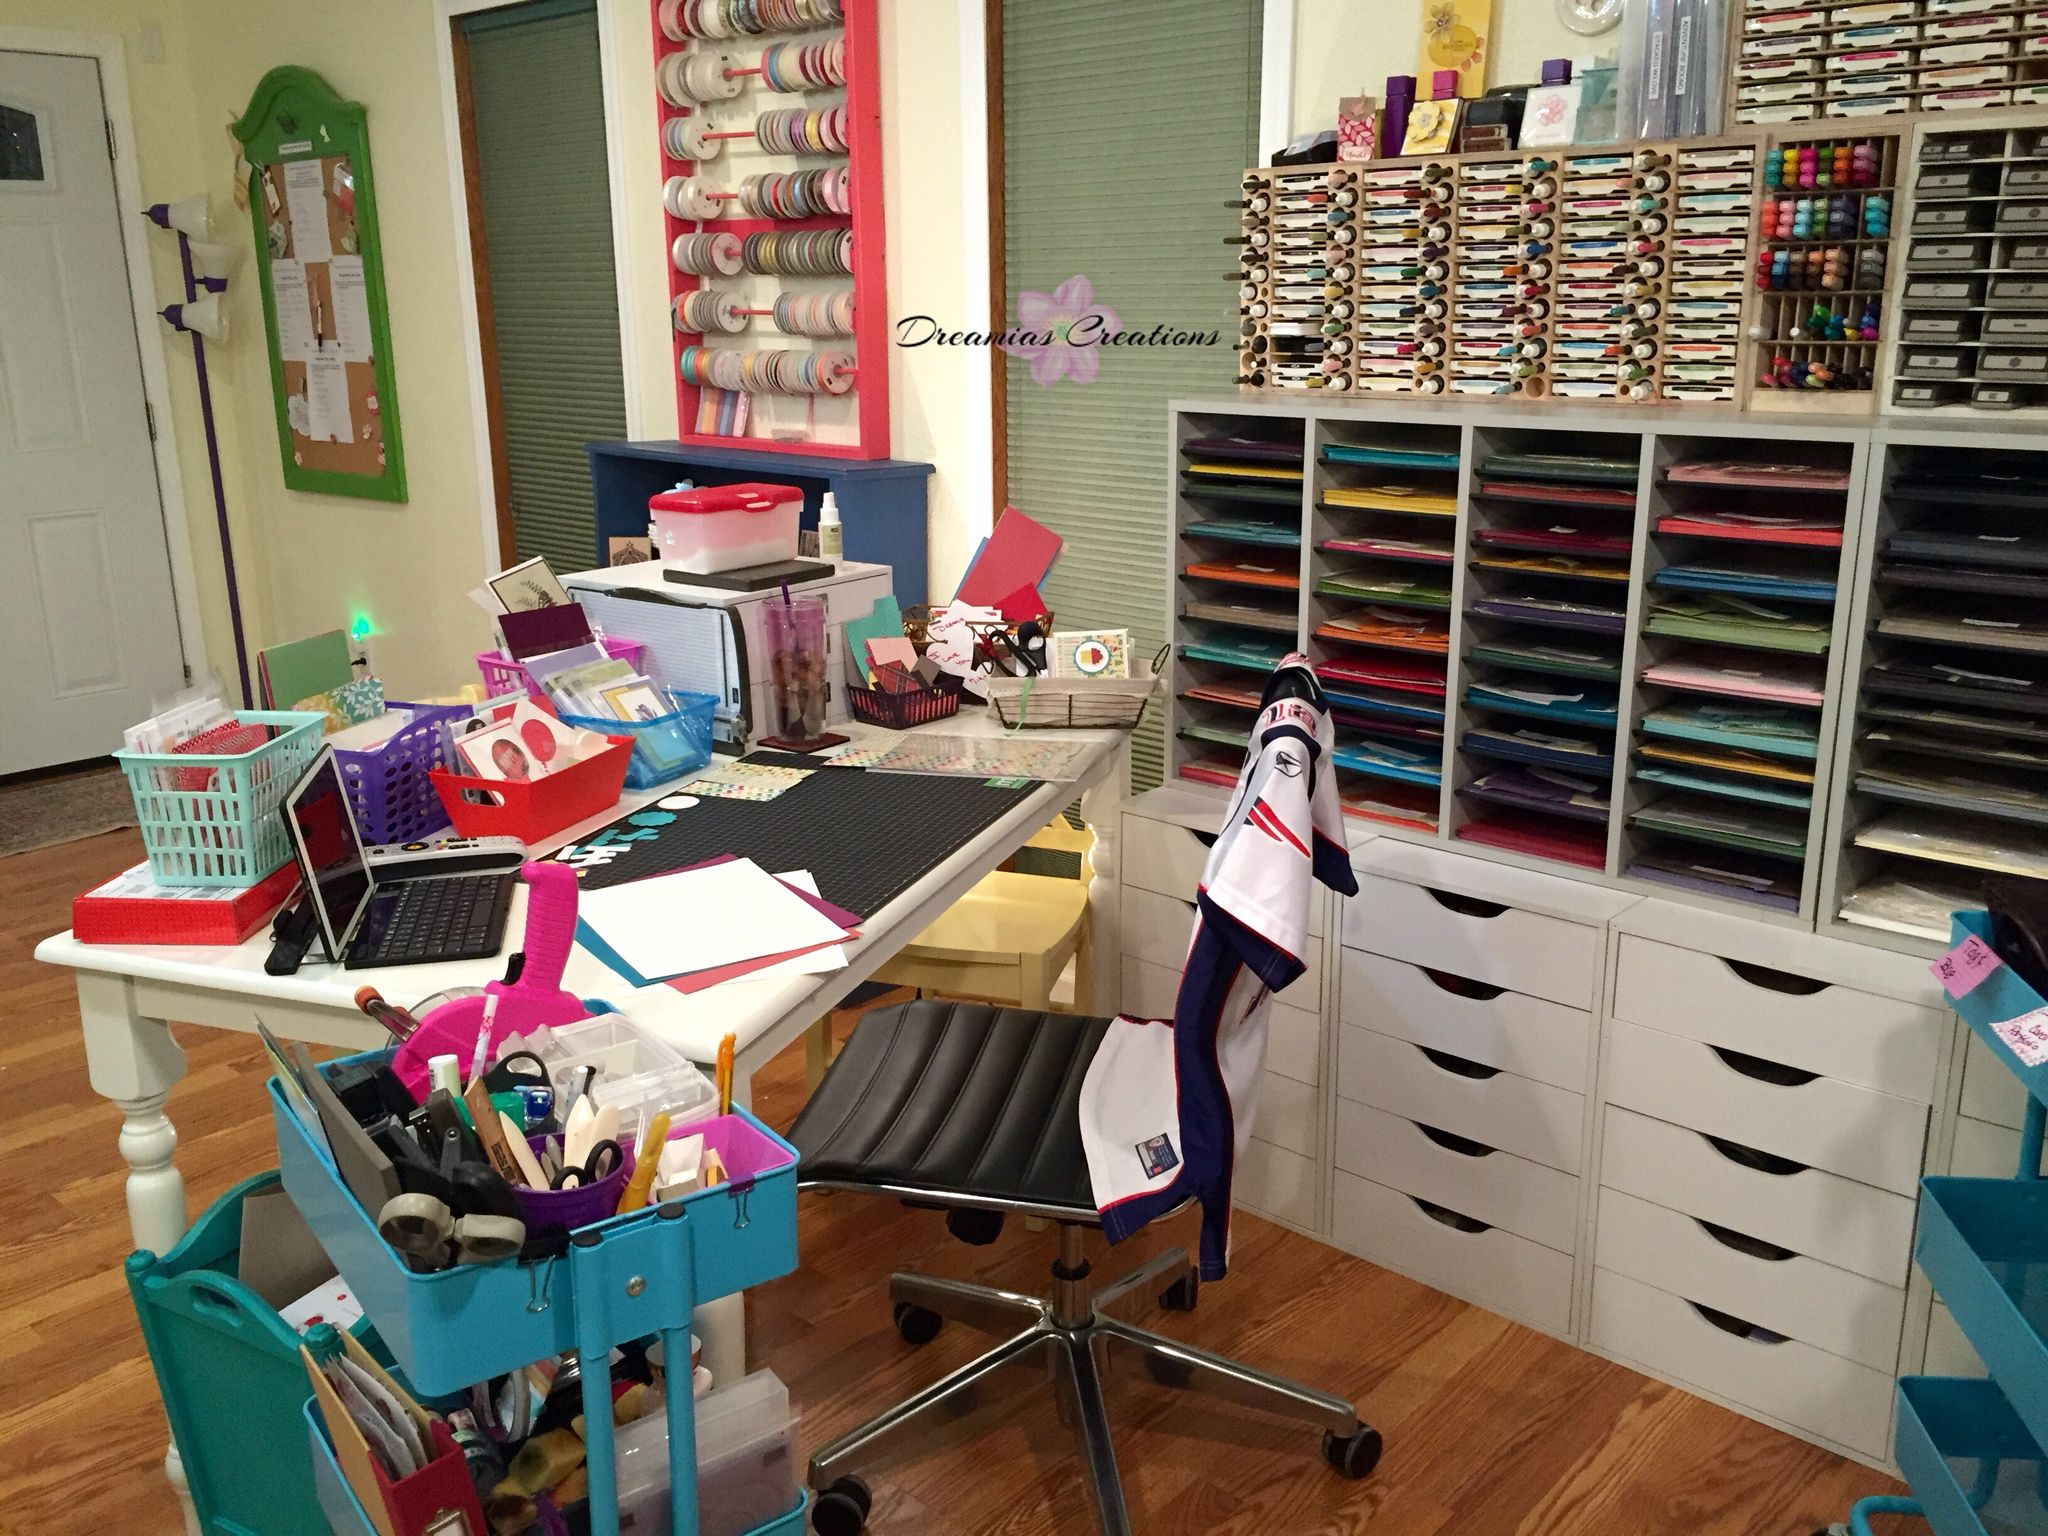 My workspace no class dreamias creations stampin studio